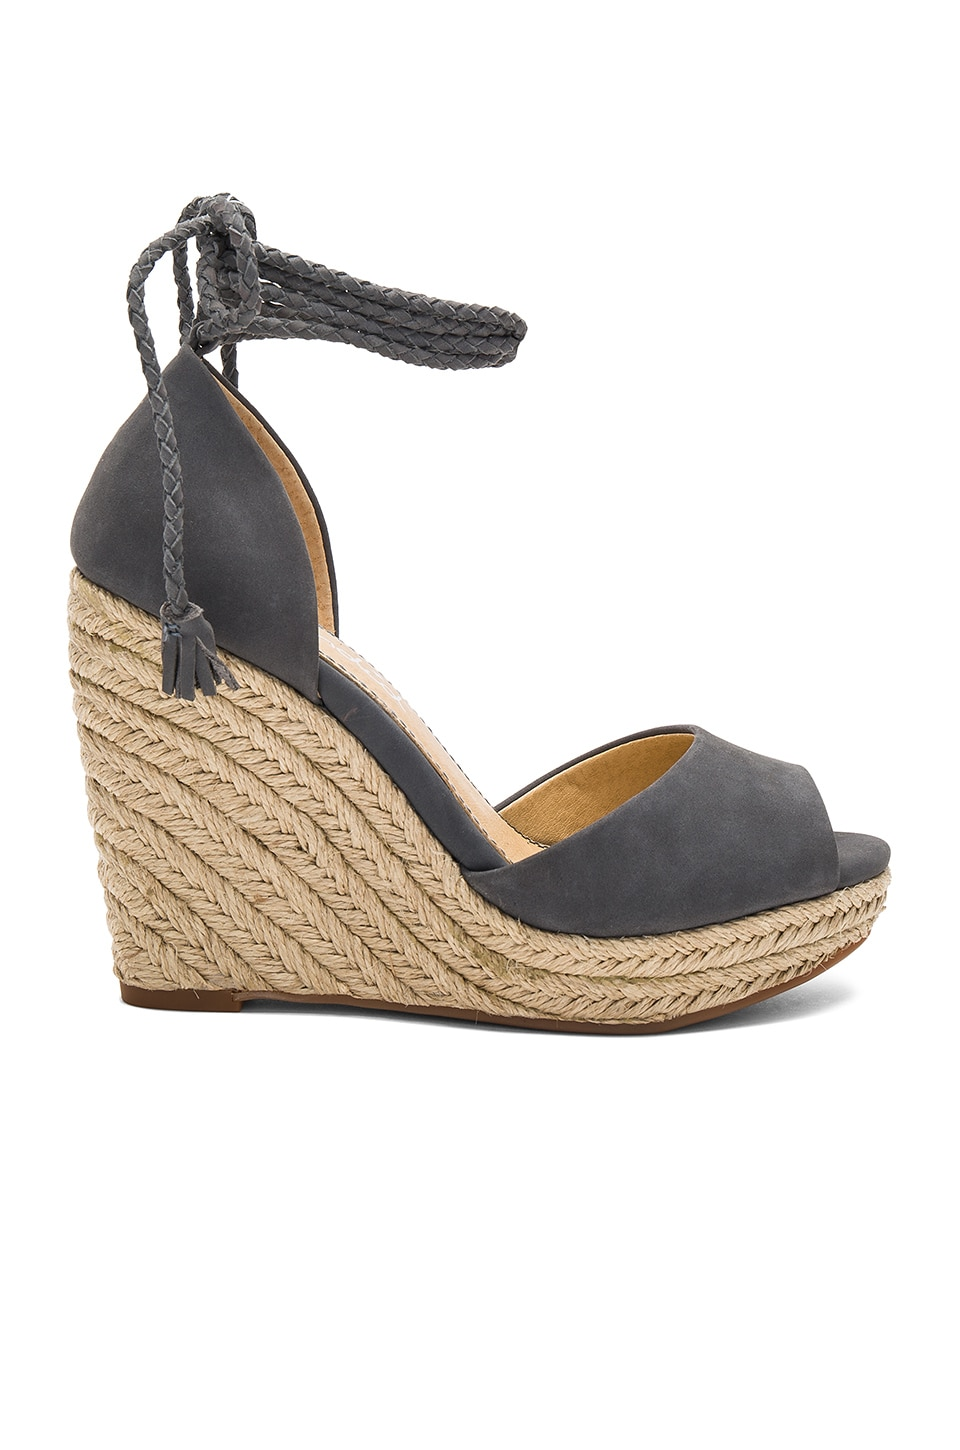 Dara Wedge by Splendid